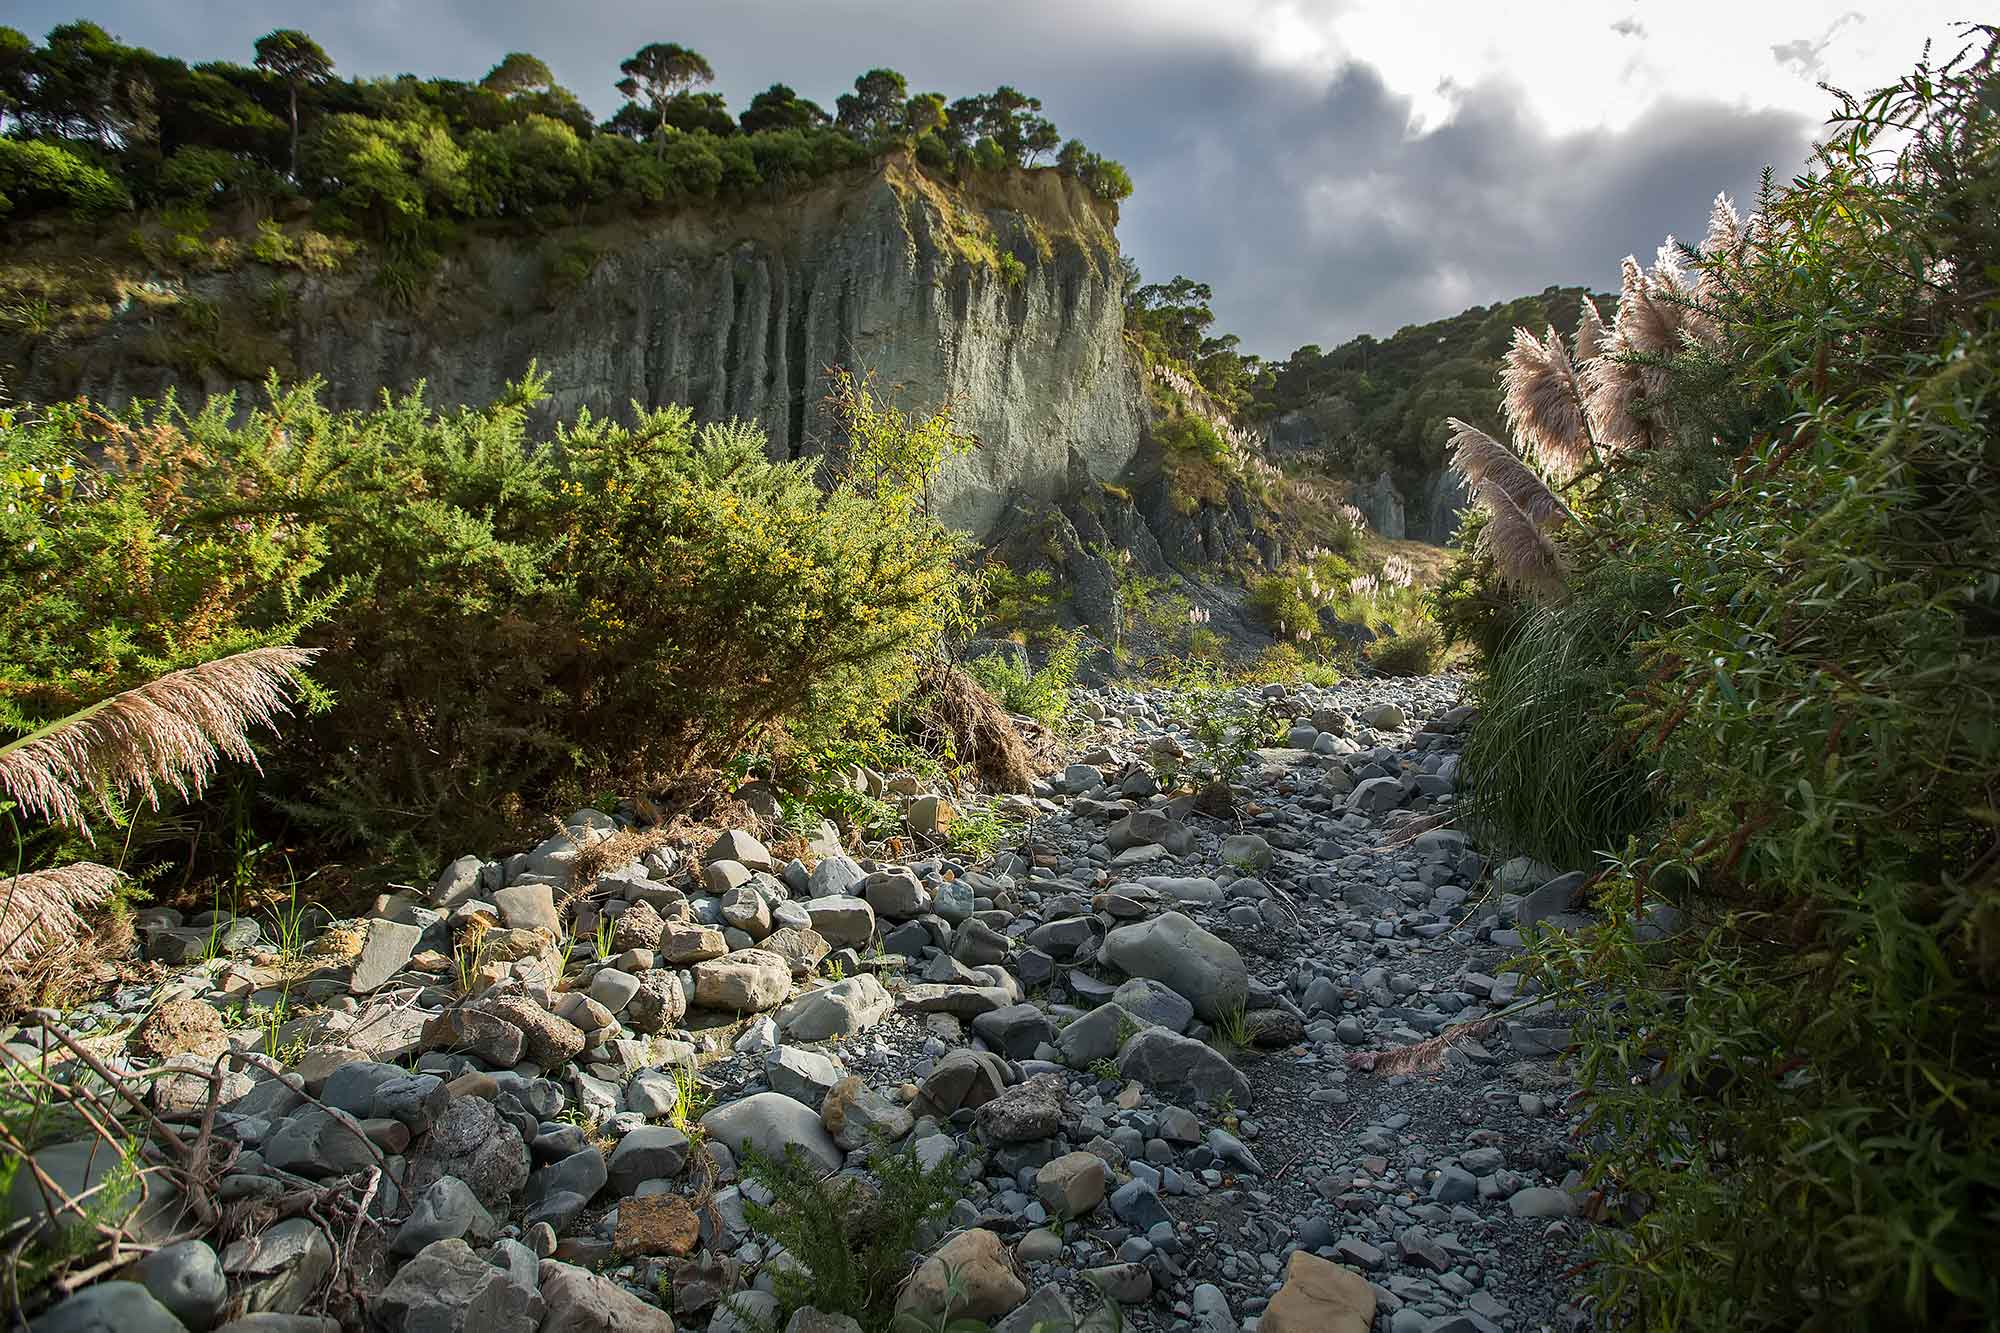 Puntangirua Pinnacles, Aorangi Forest Park in New Zealand. © Ulli Maier & Nisa Maier